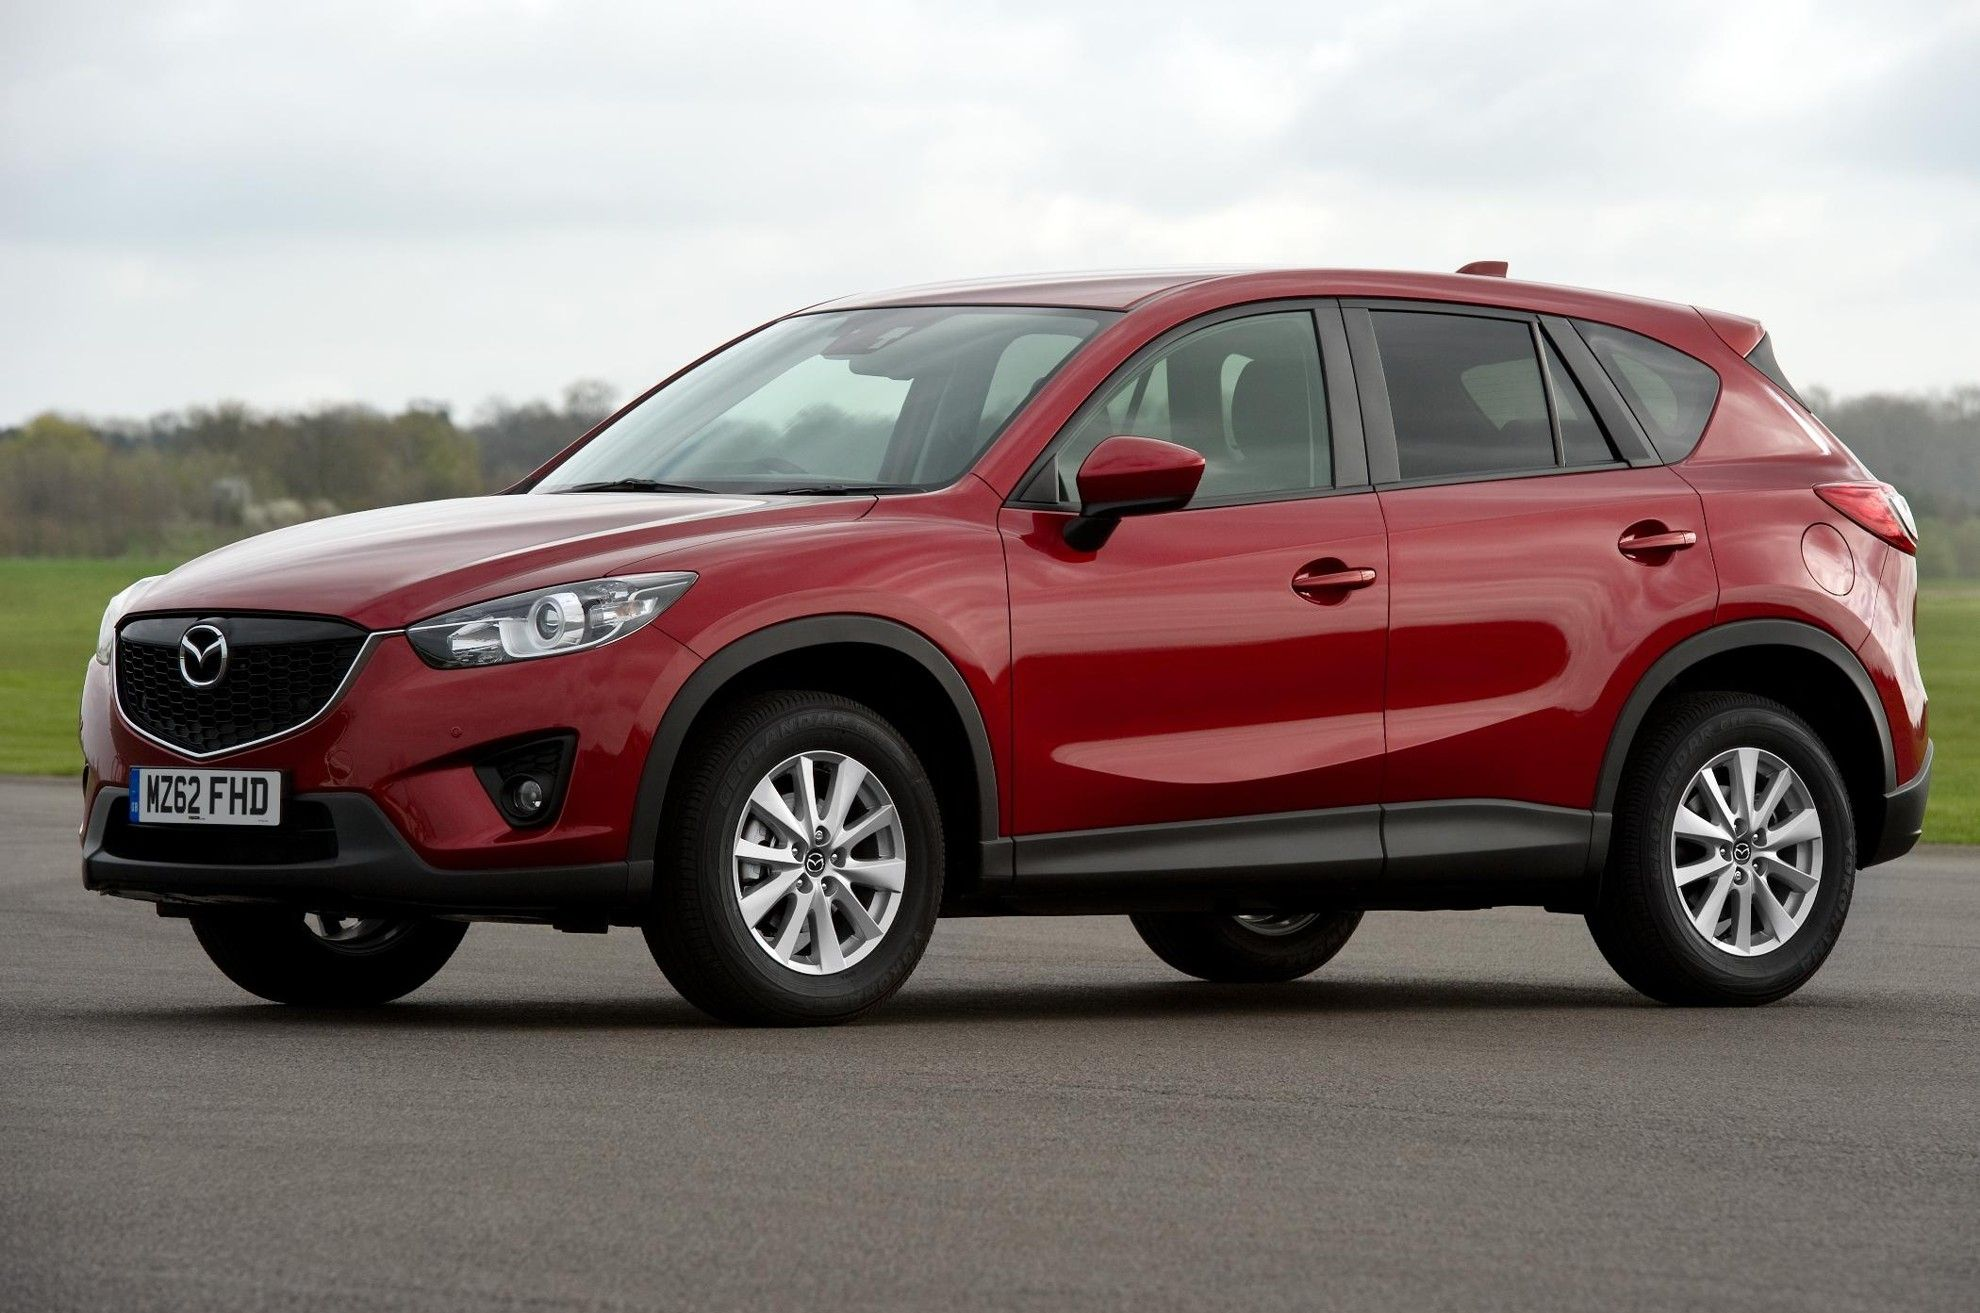 Cars For Sale Mazda Cx 5 Wins Best Buy Suv Award From What Car